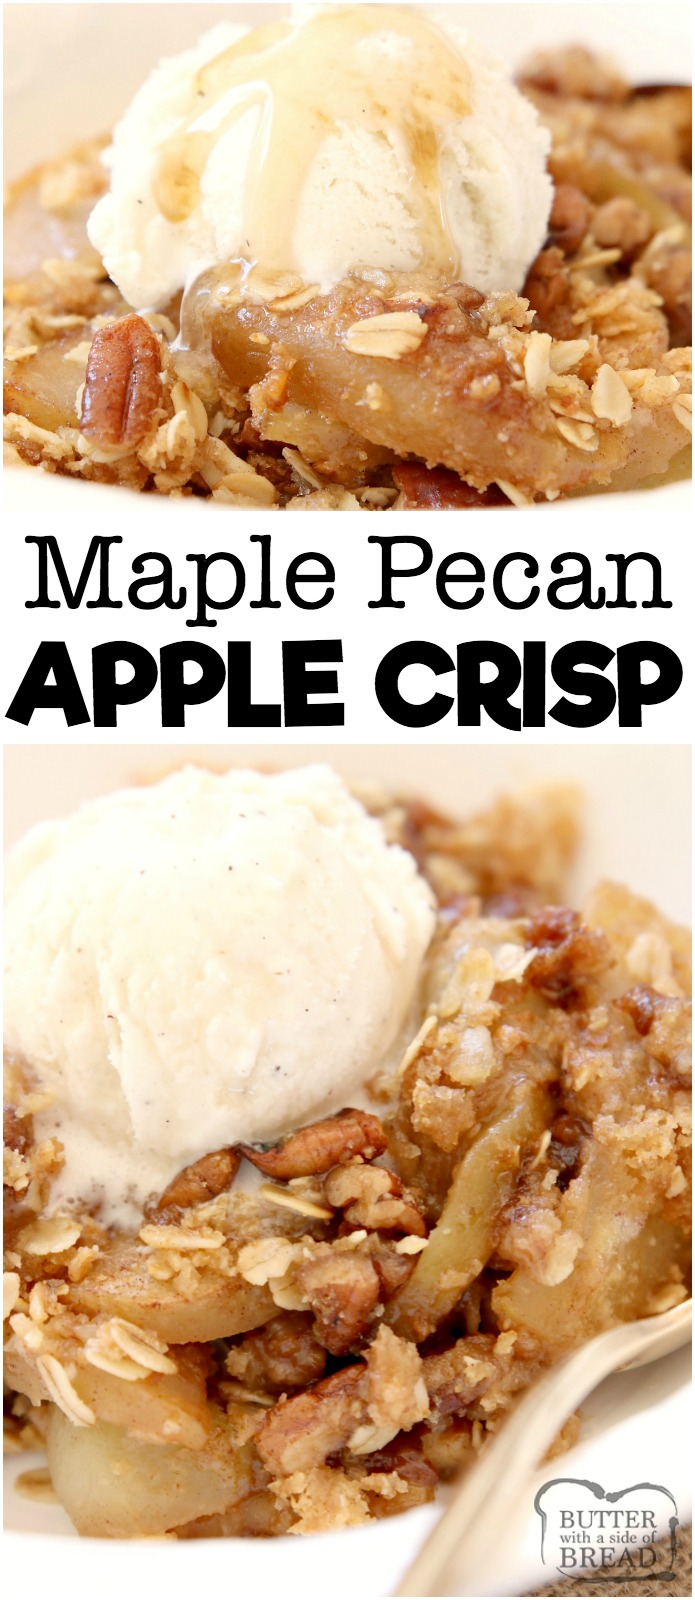 Maple Pecan Apple Crisp made with oats, pecans, brown sugar, butter and apples in a perfect Fall dish bursting with fresh apple flavor! Topped with real maple syrup, this apple crisp recipe is our all-time favorite! #apples #baking #fall #recipe #dessert #apple #applecrisp #maple #pecans from BUTTER WITH A SIDE OF BREAD